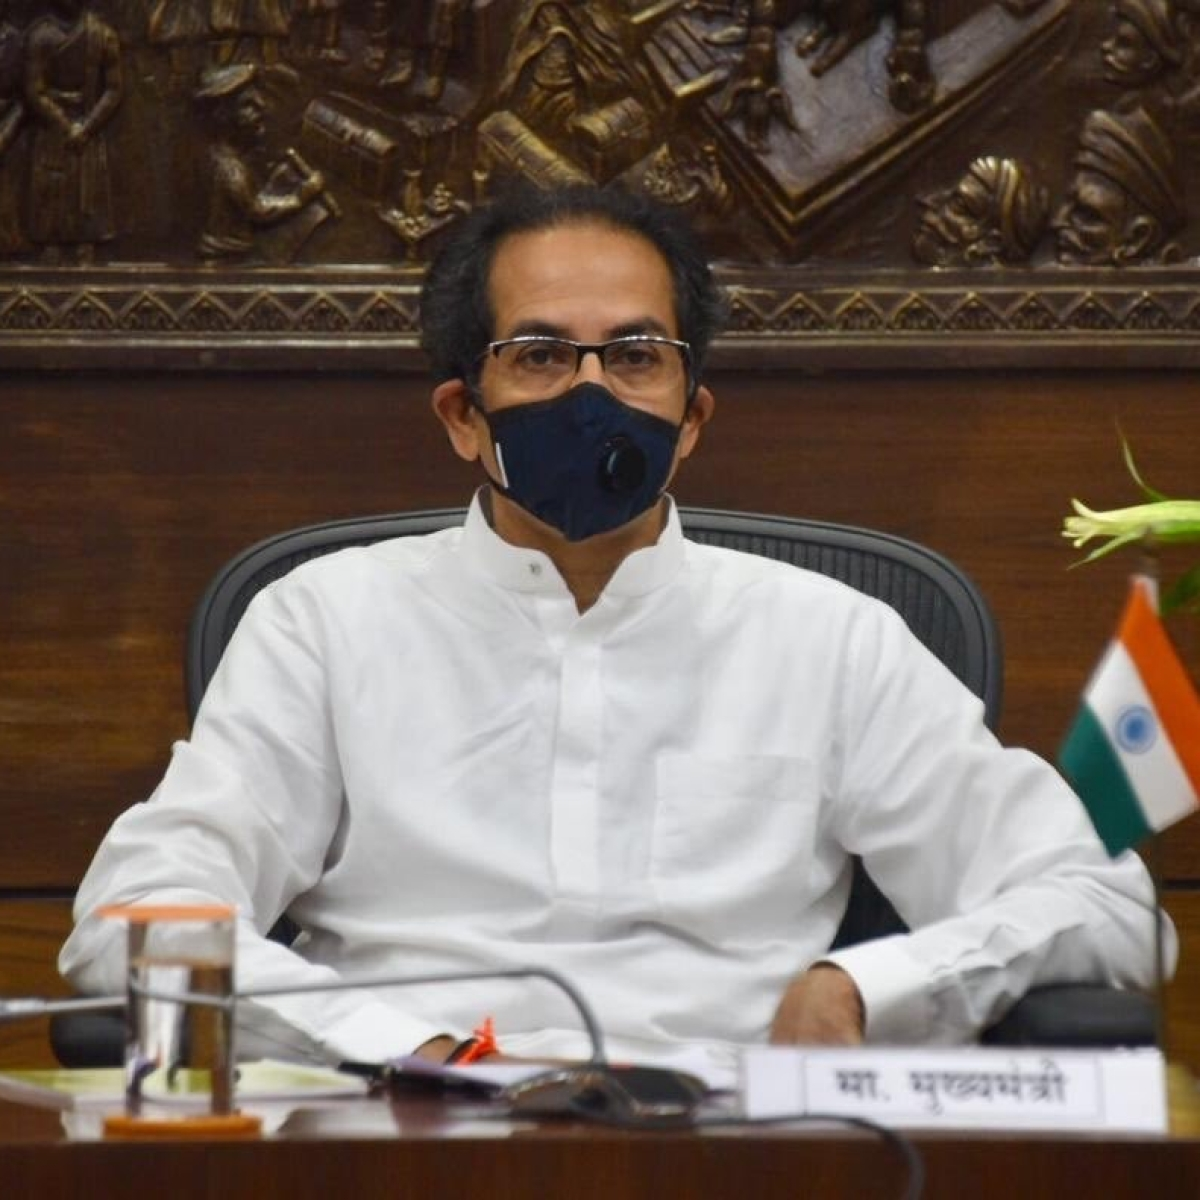 Start online or offline teaching from June, not necessary to open schools: Maha CM Uddhav Thackeray